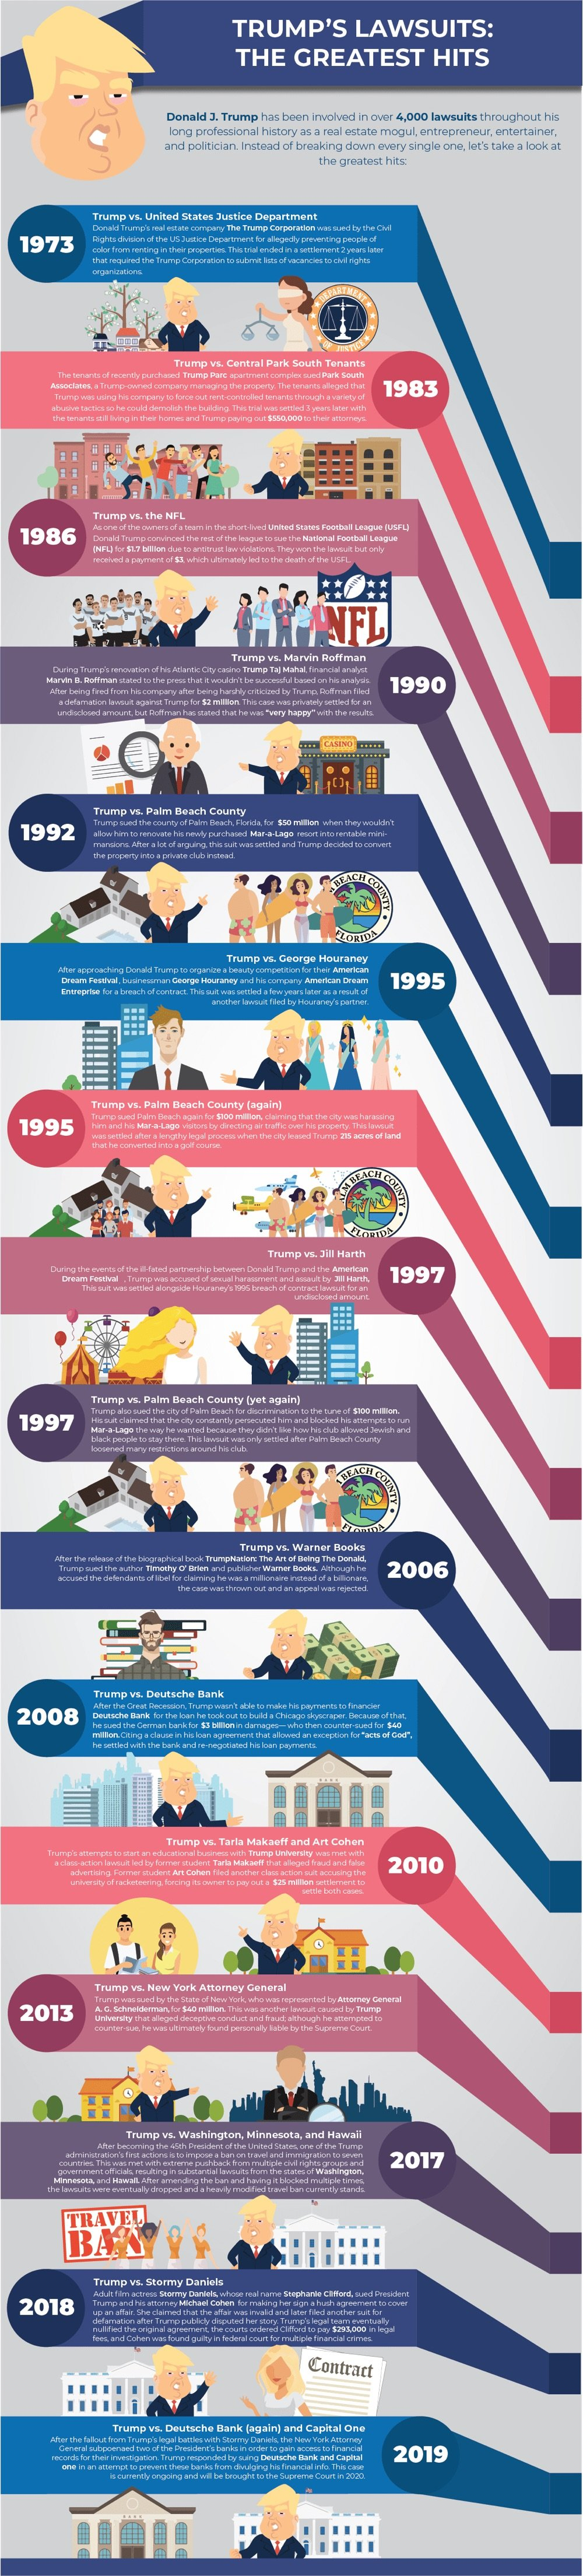 Donald Trump's Long History of Lawsuits